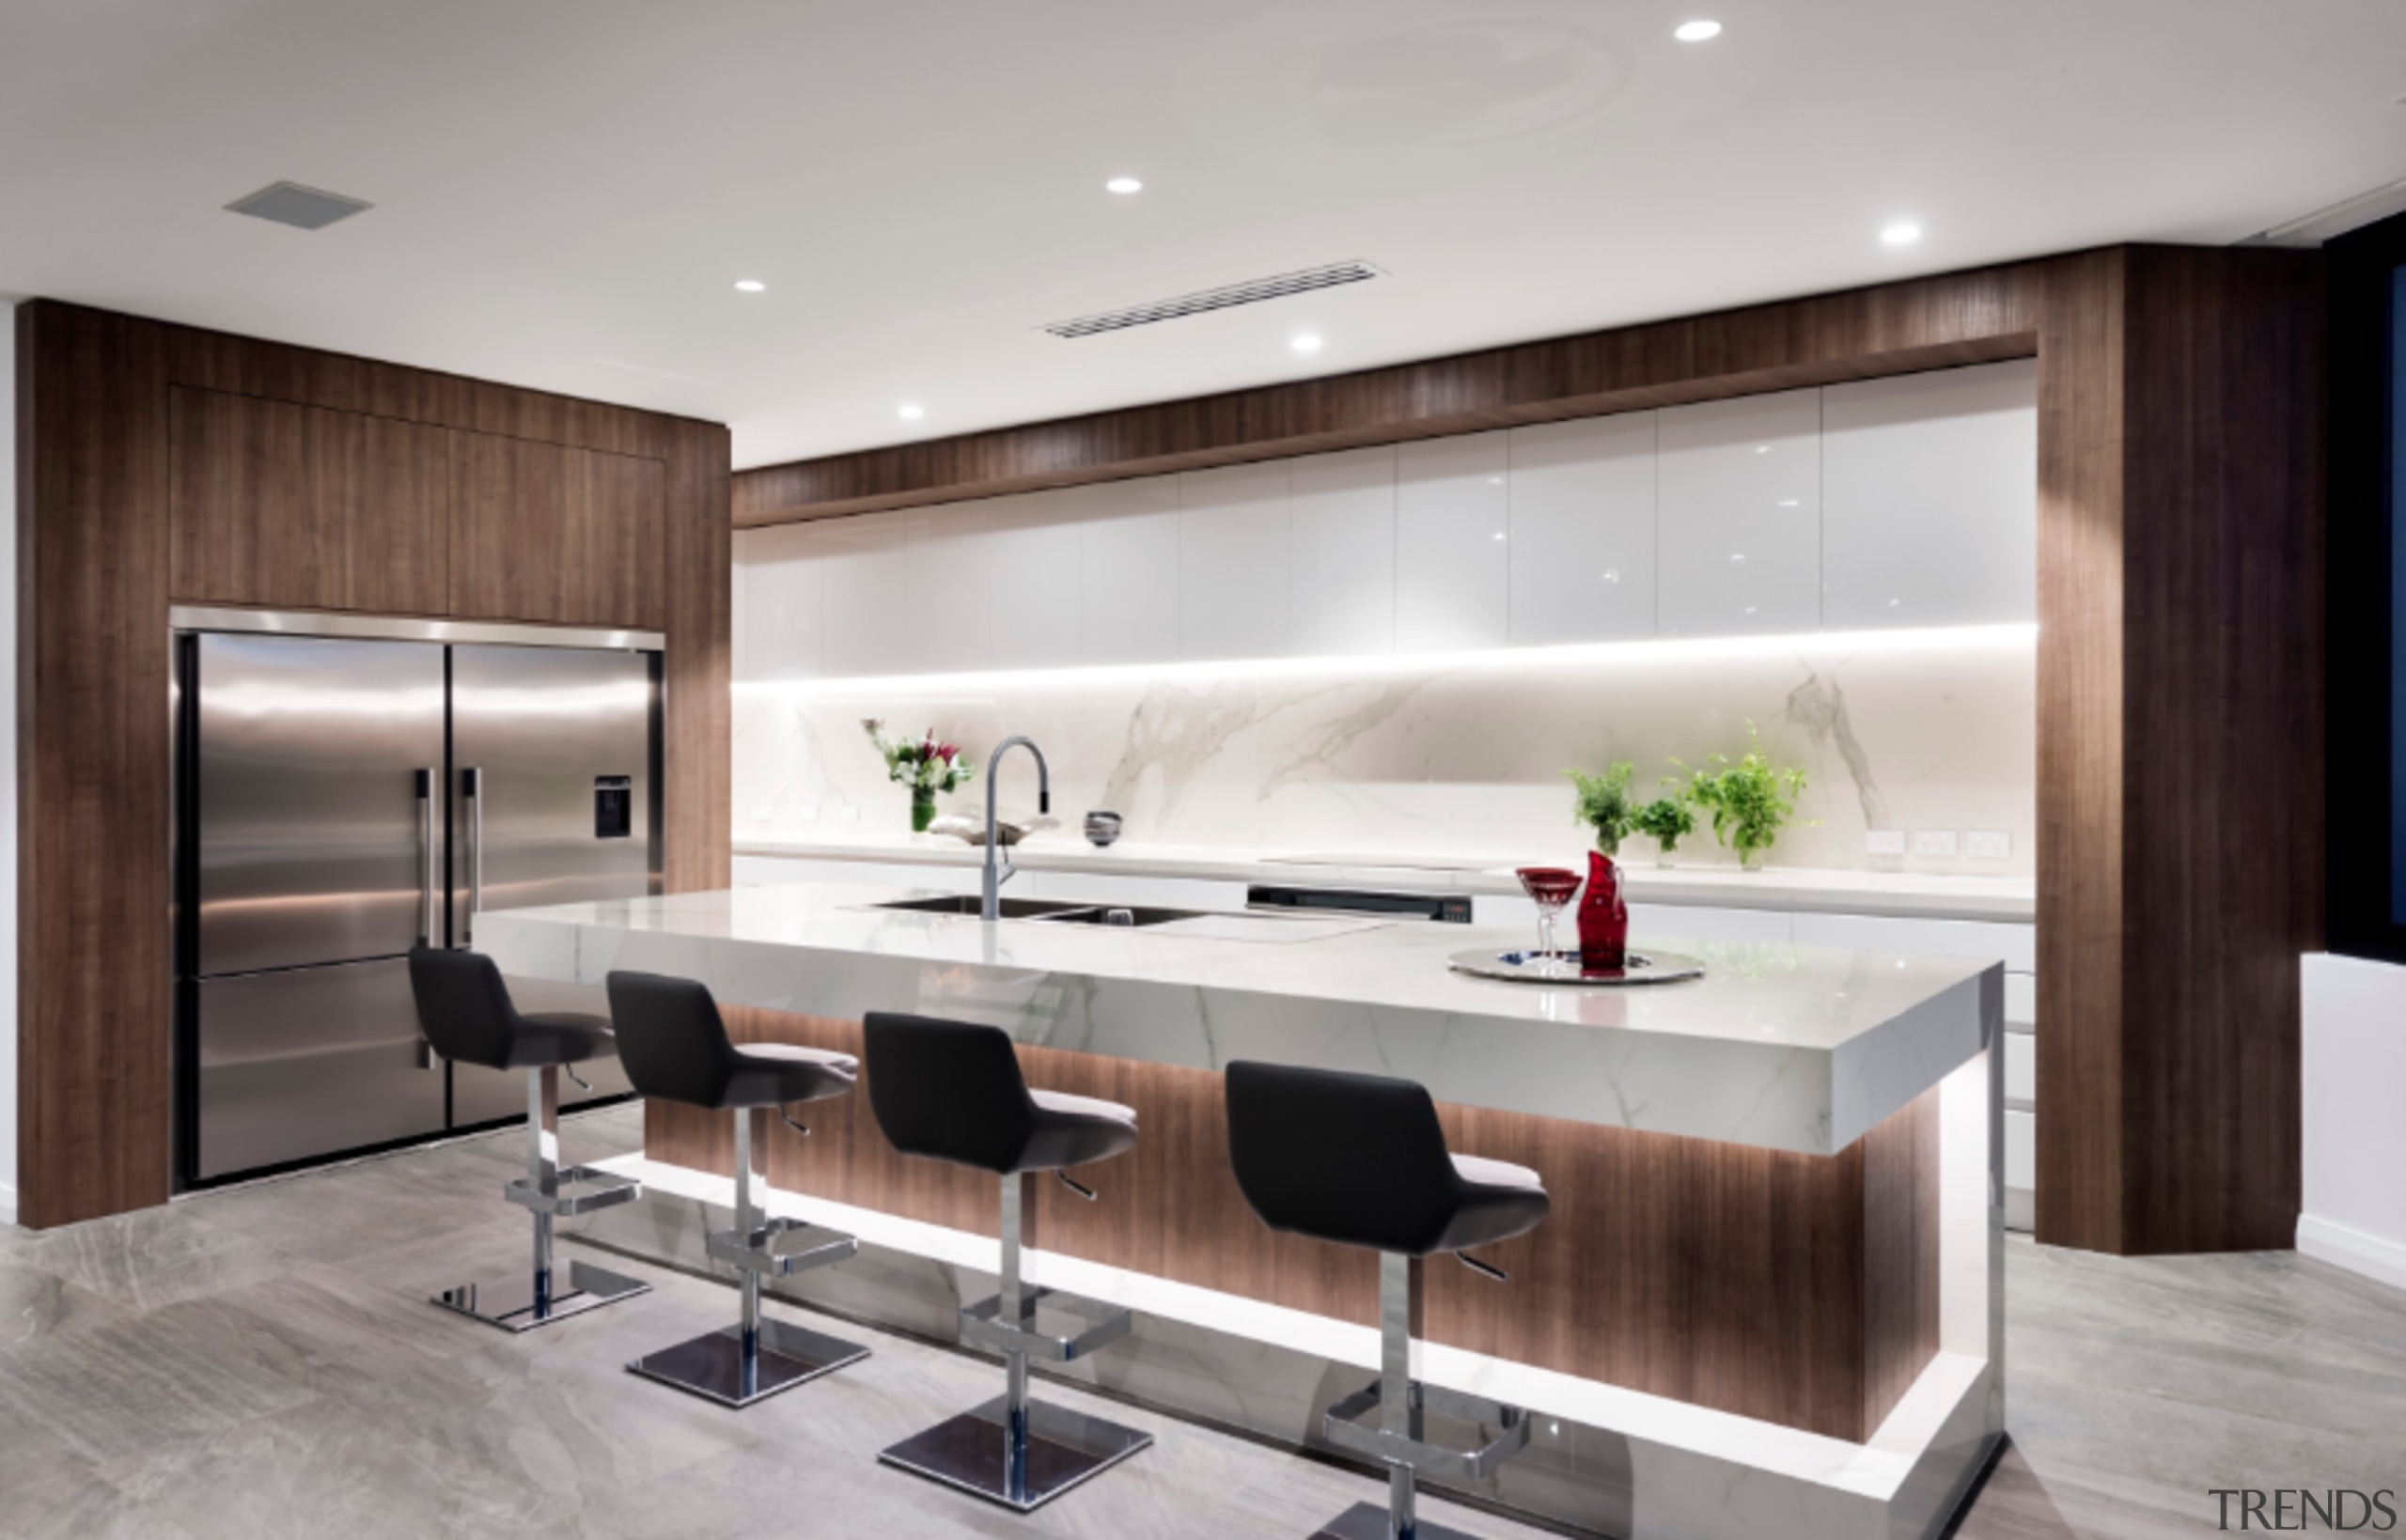 See more here cabinetry, countertop, interior design, kitchen, gray